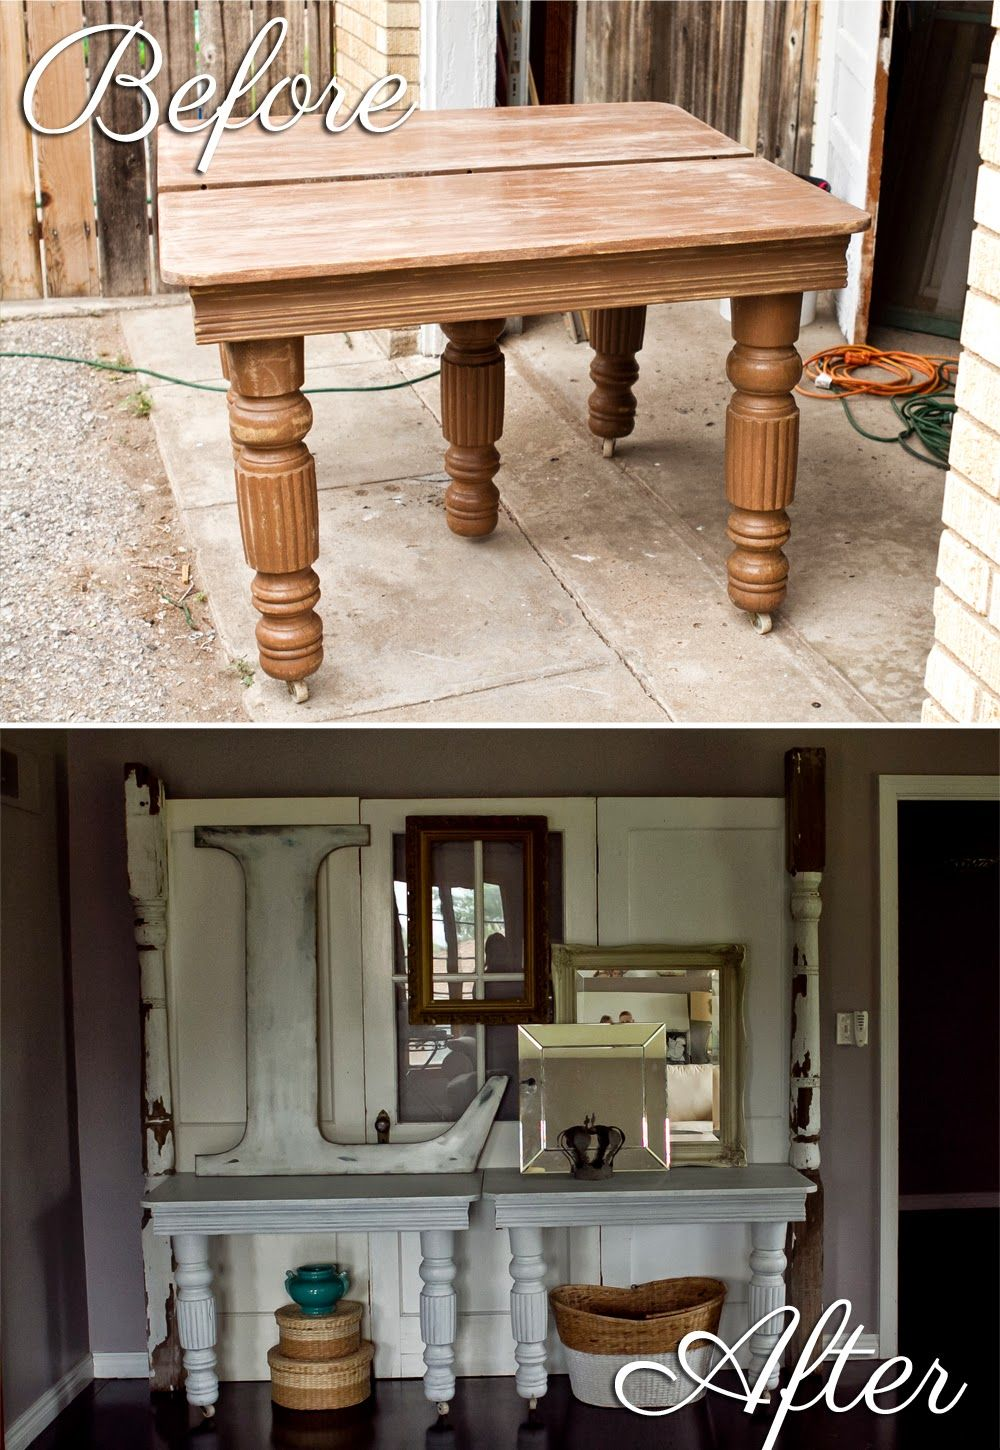 Custom woodworker specializing in handcrafted rustic